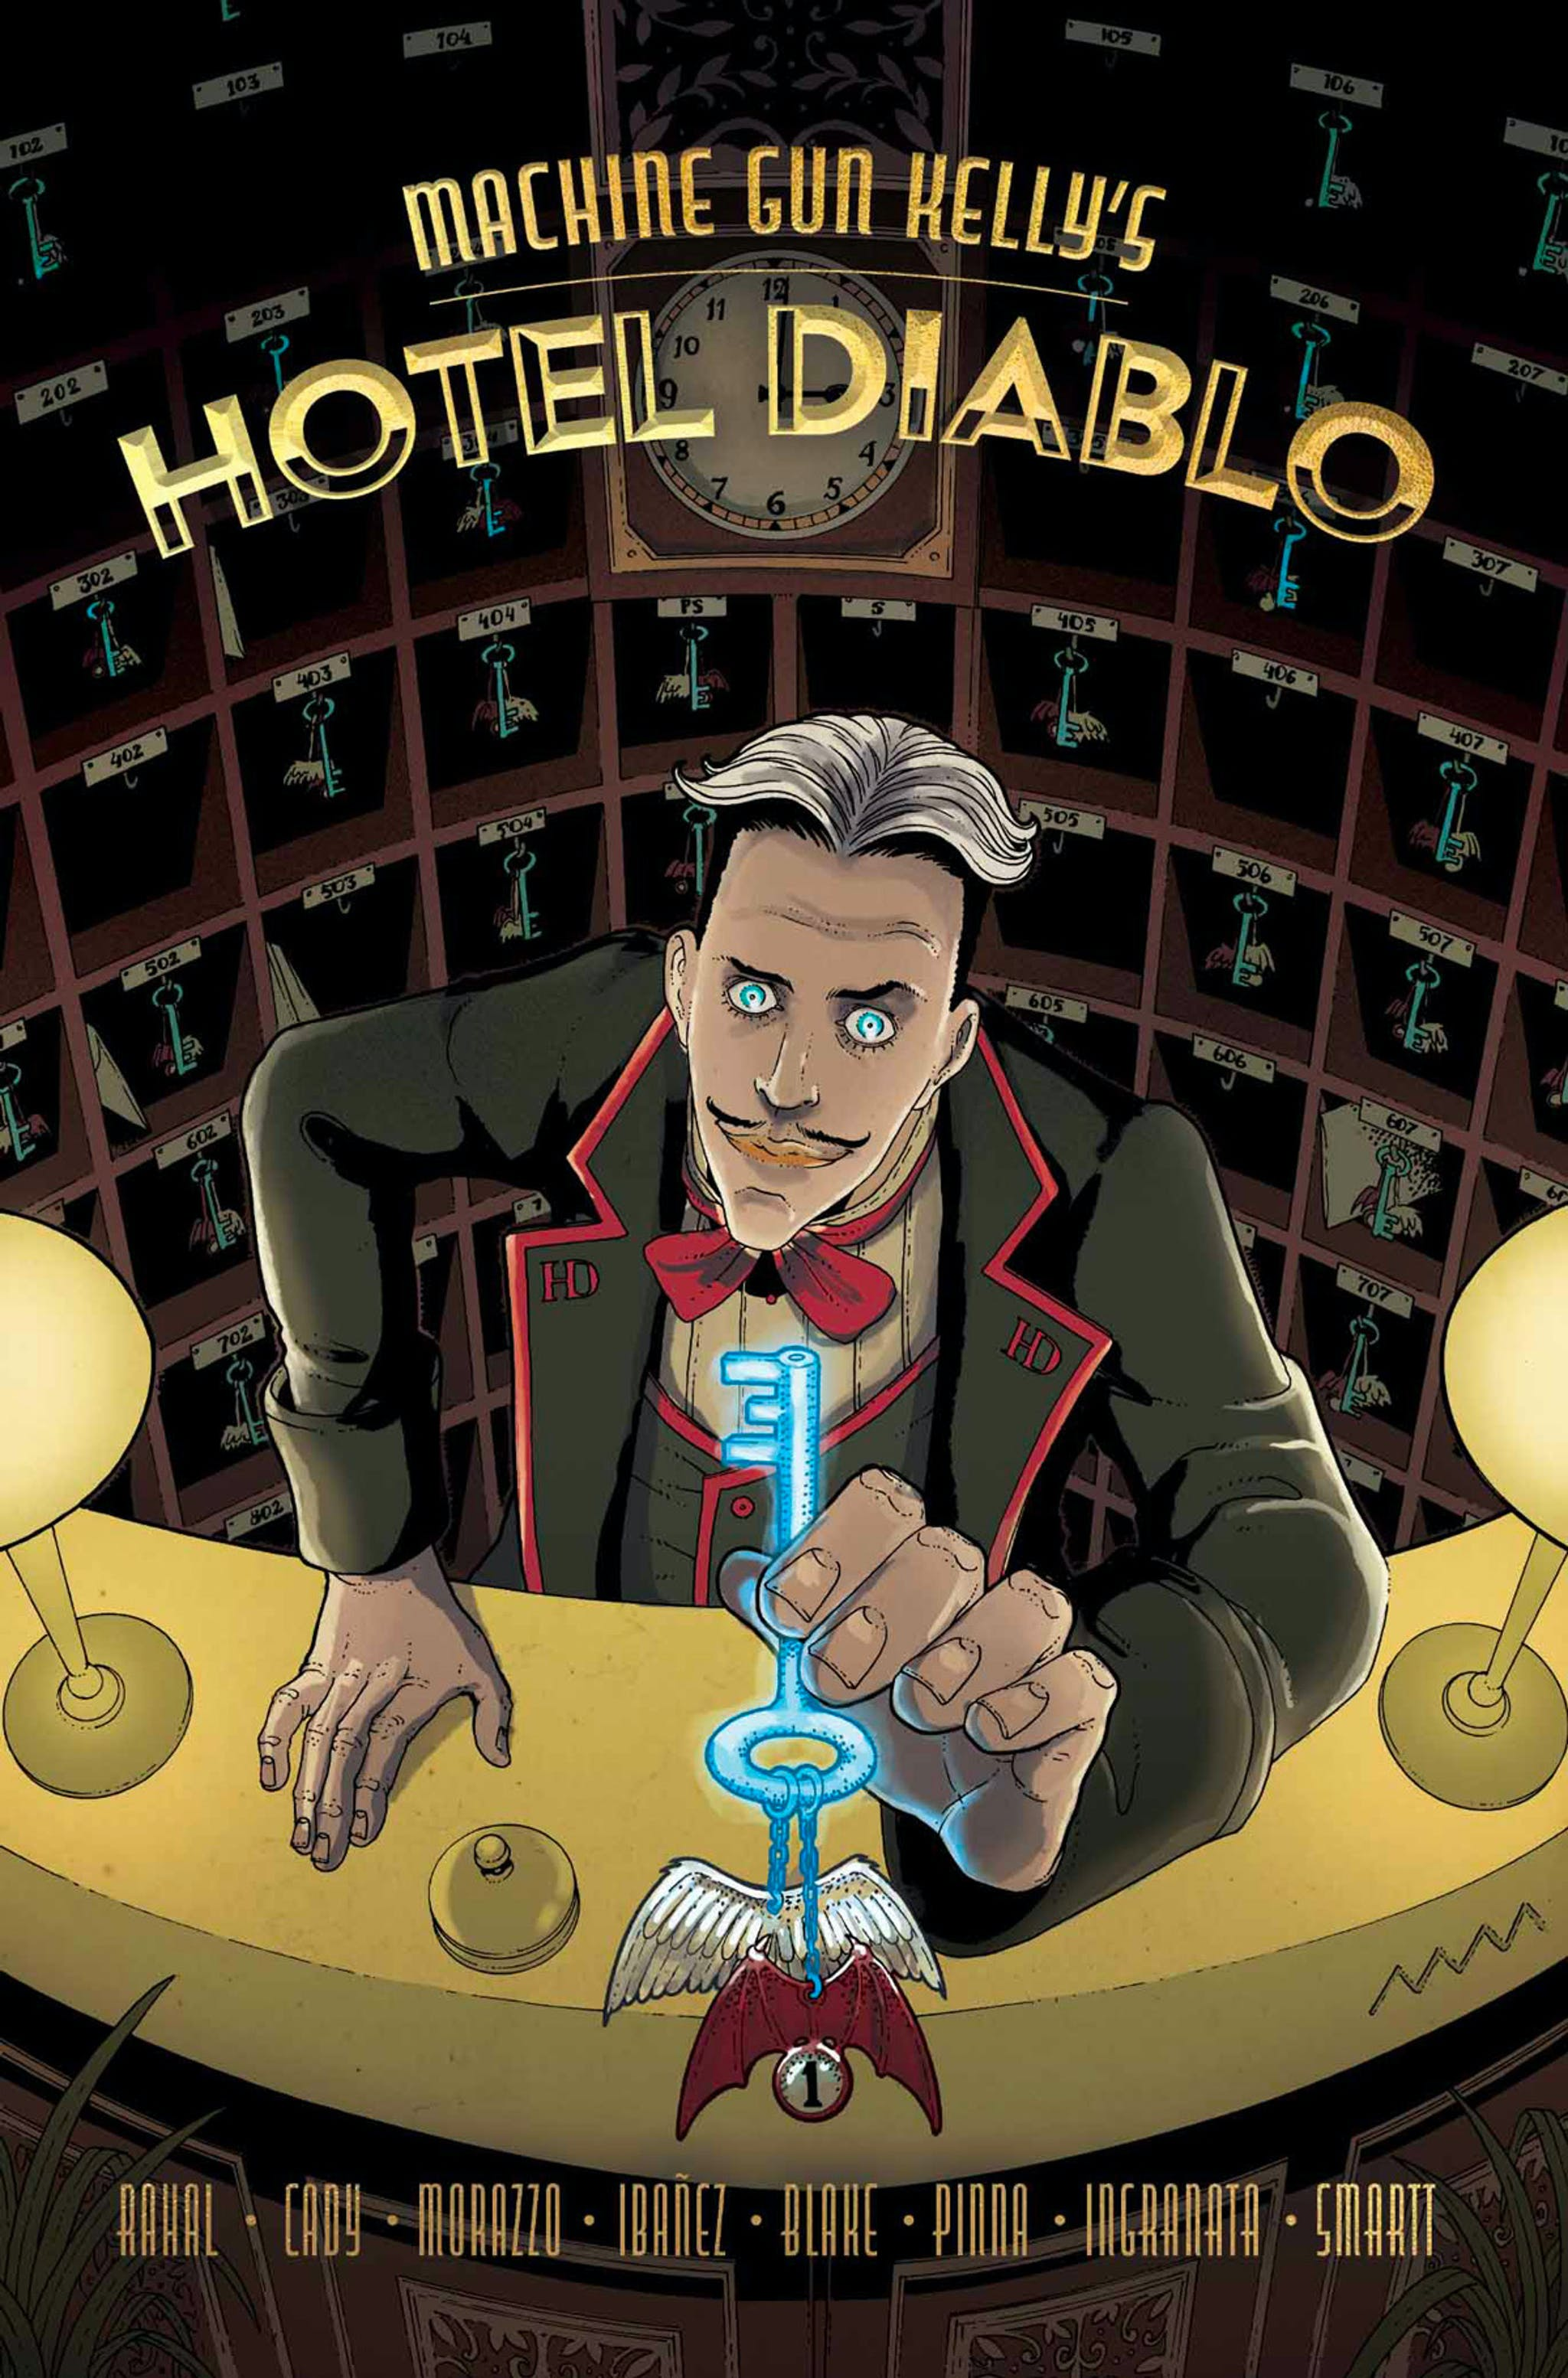 Machine Gun Kelly Hotel Diablo graphic novel cover